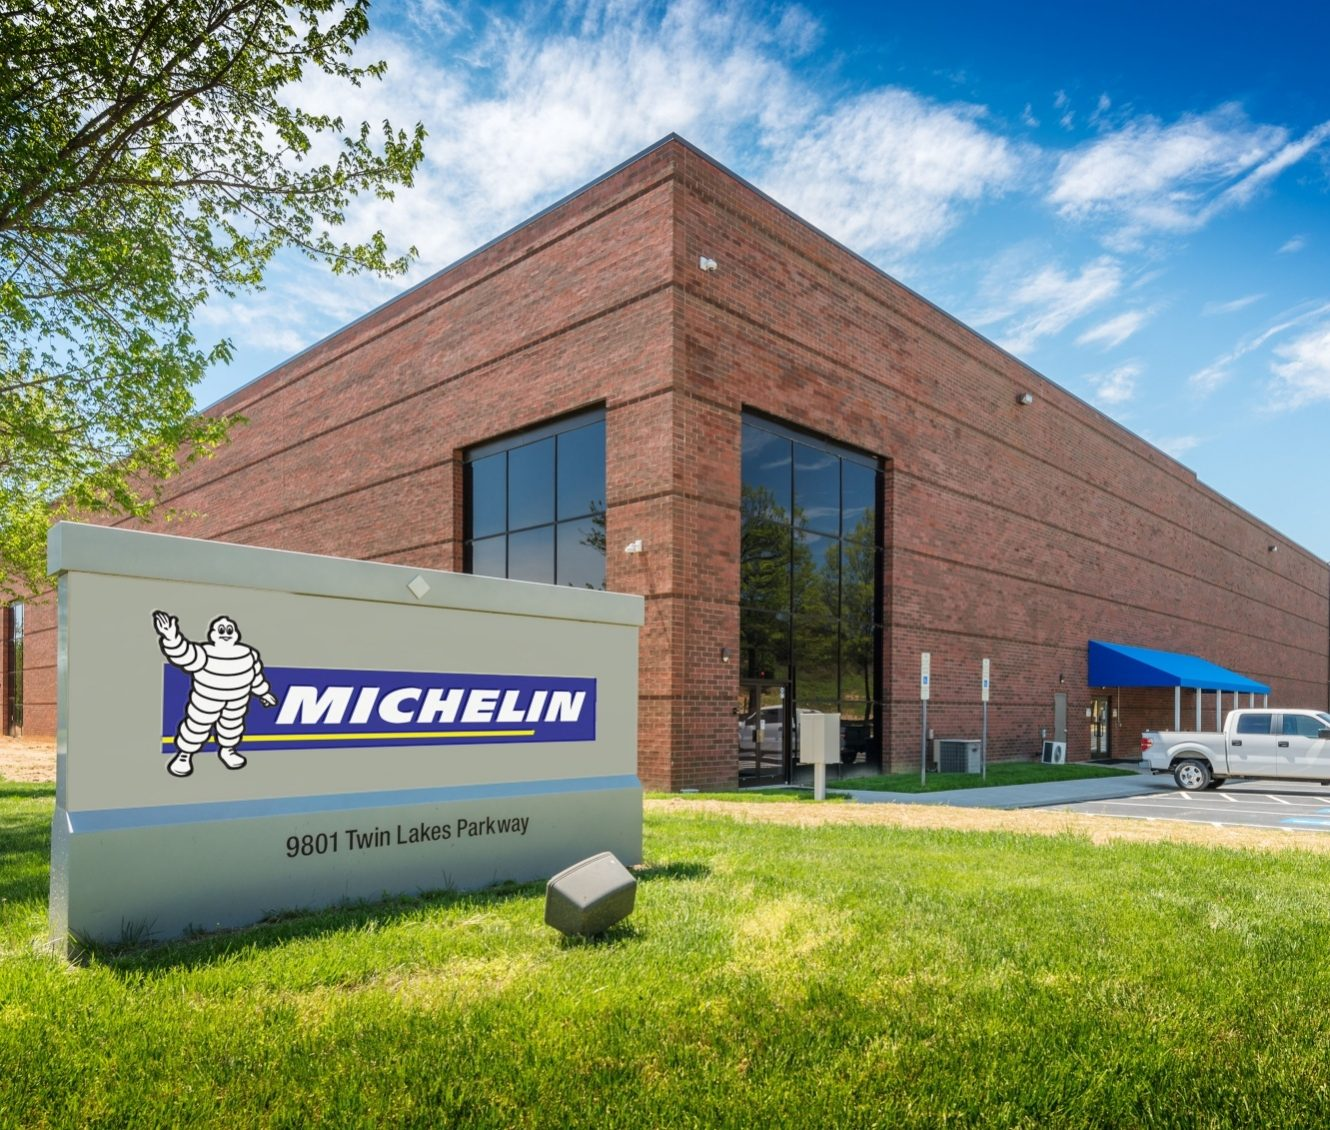 Michelin Building And Signage Rs